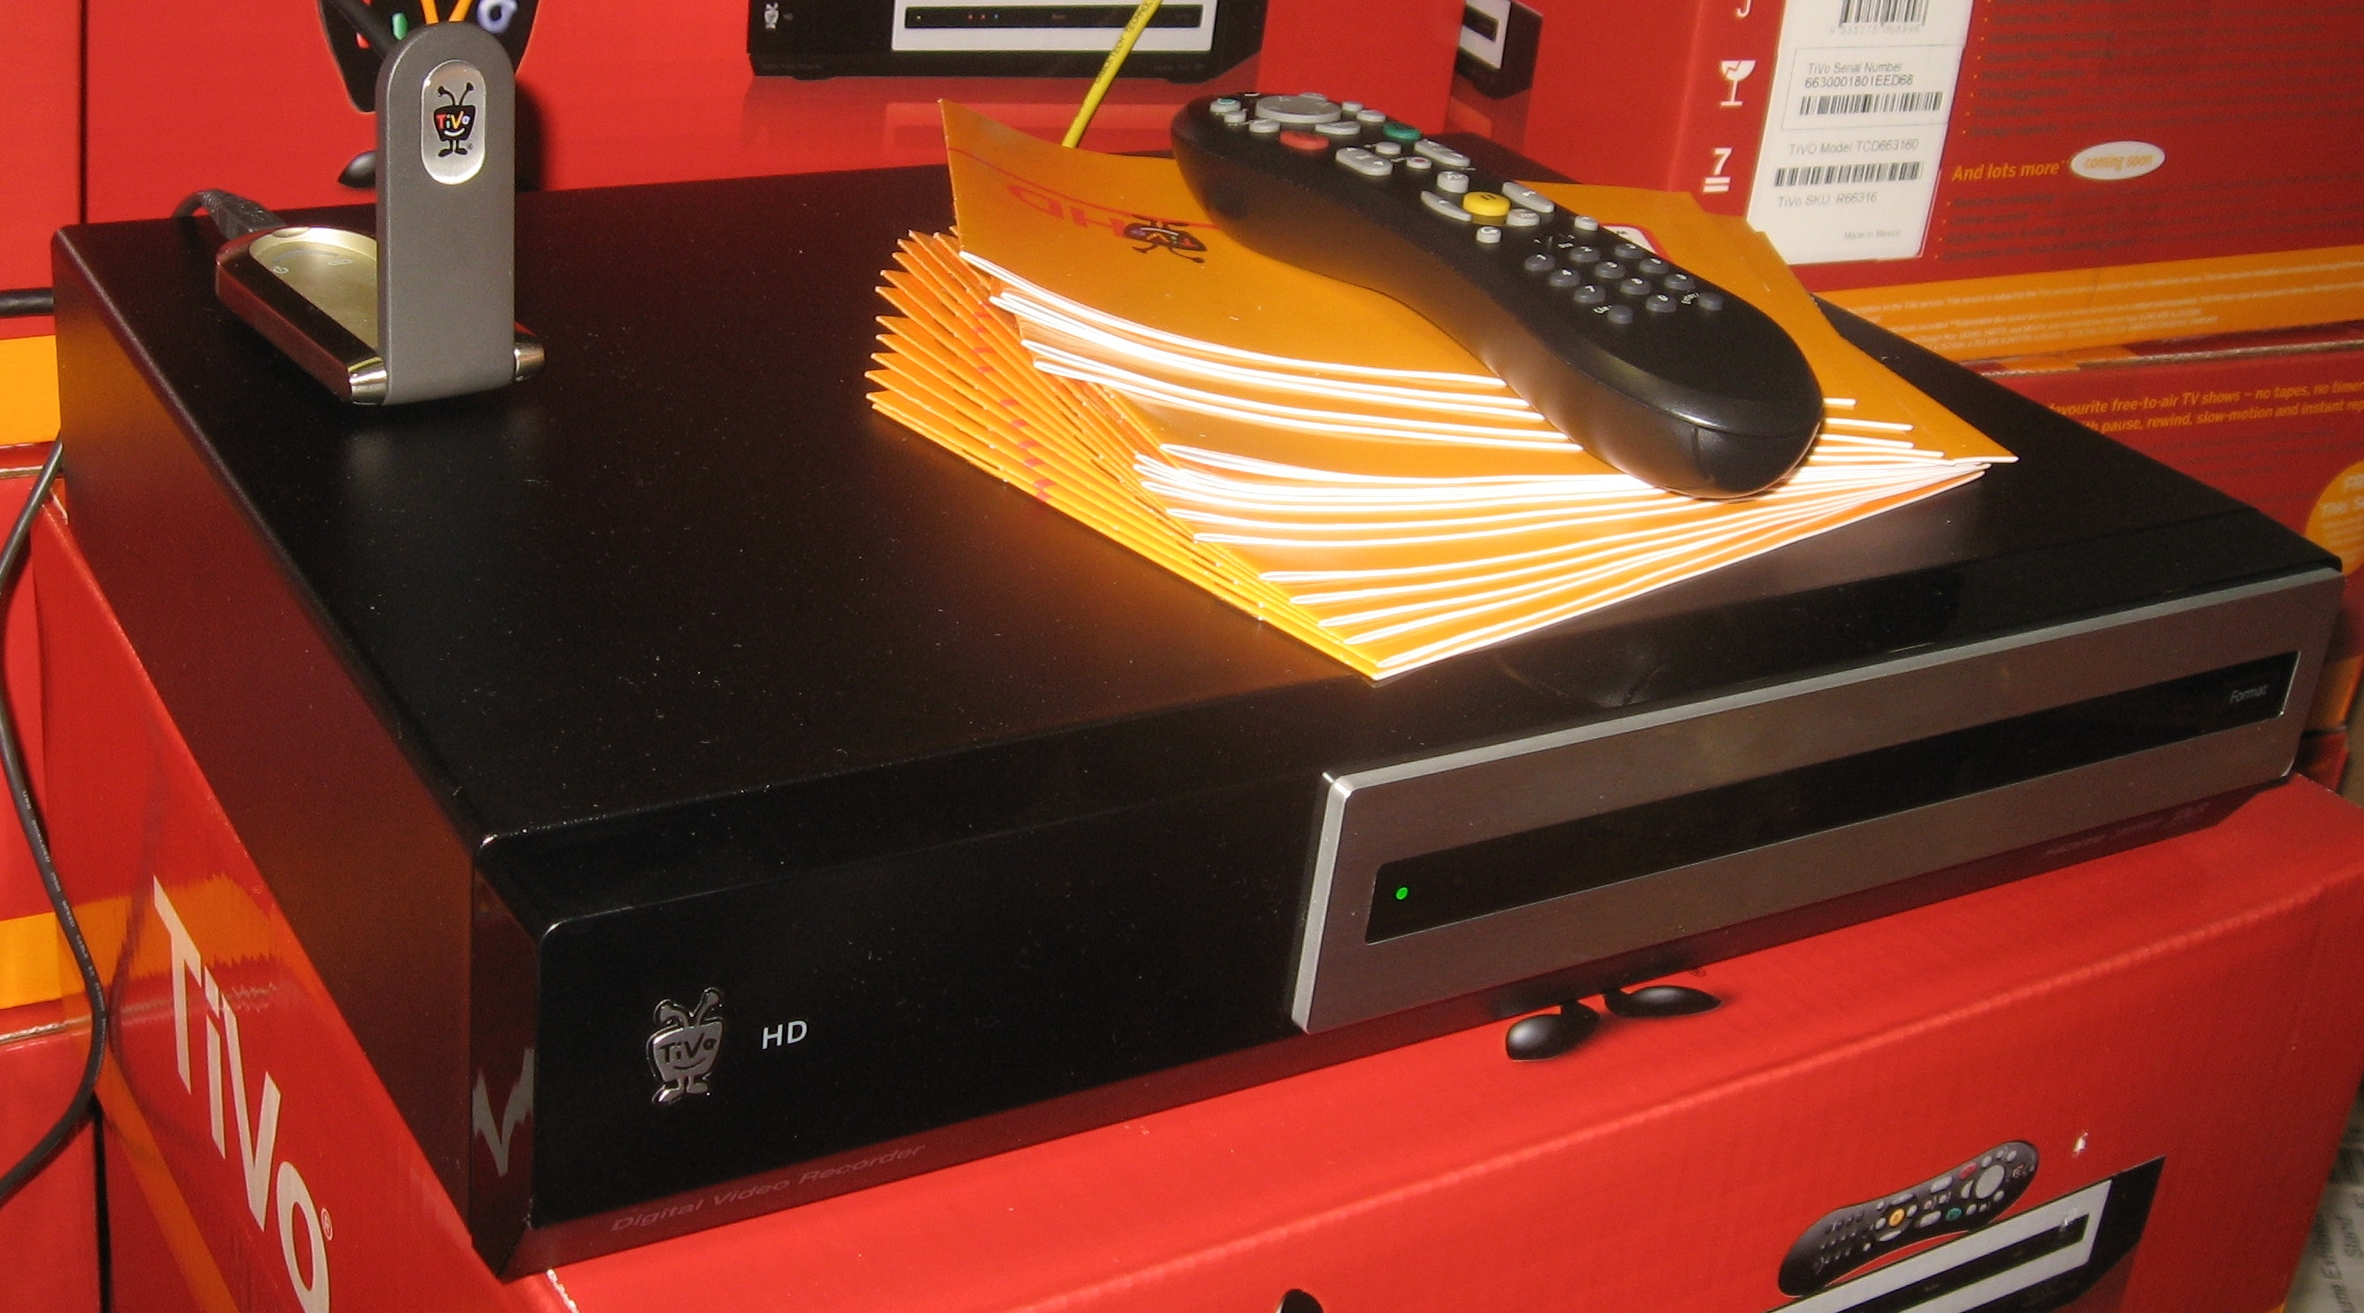 A network-attached storage could be the next PVR